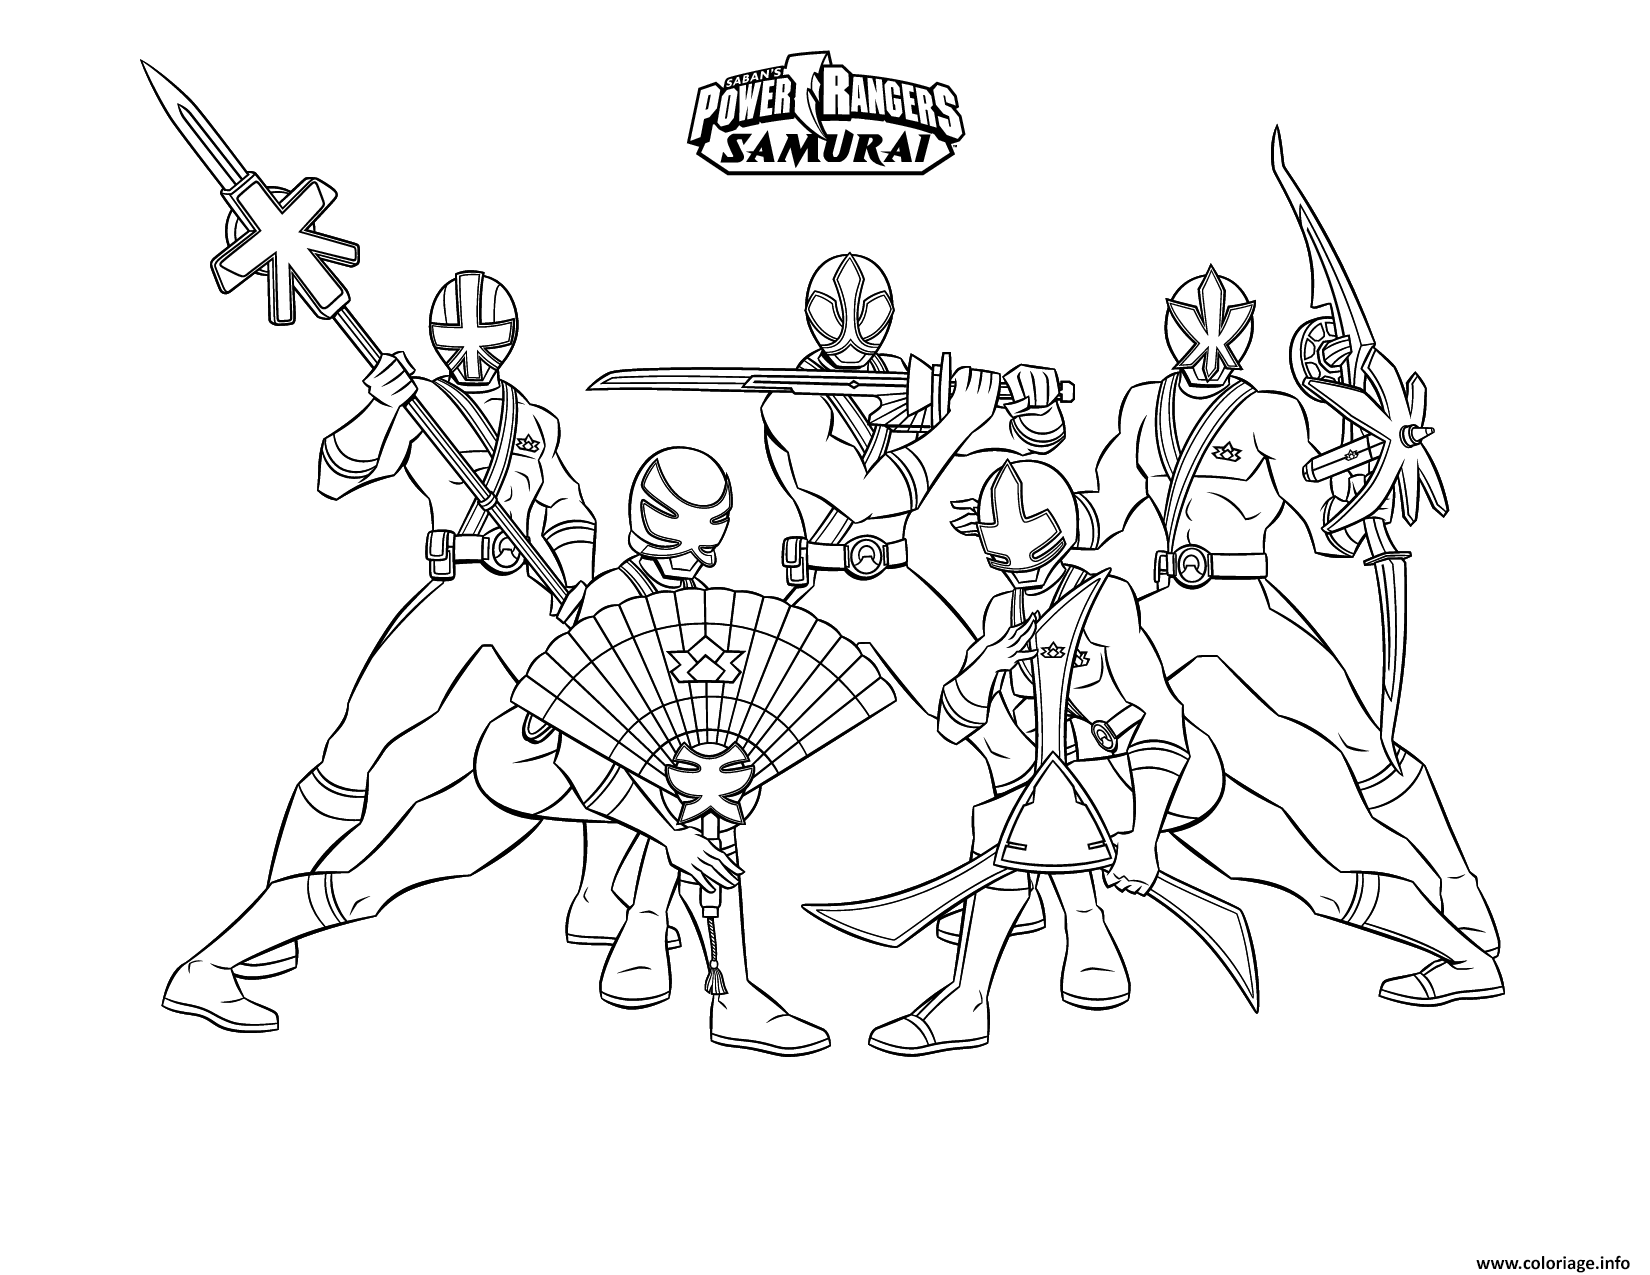 Coloriage samurai power rangers equipe dessin - Power rangers gratuit ...